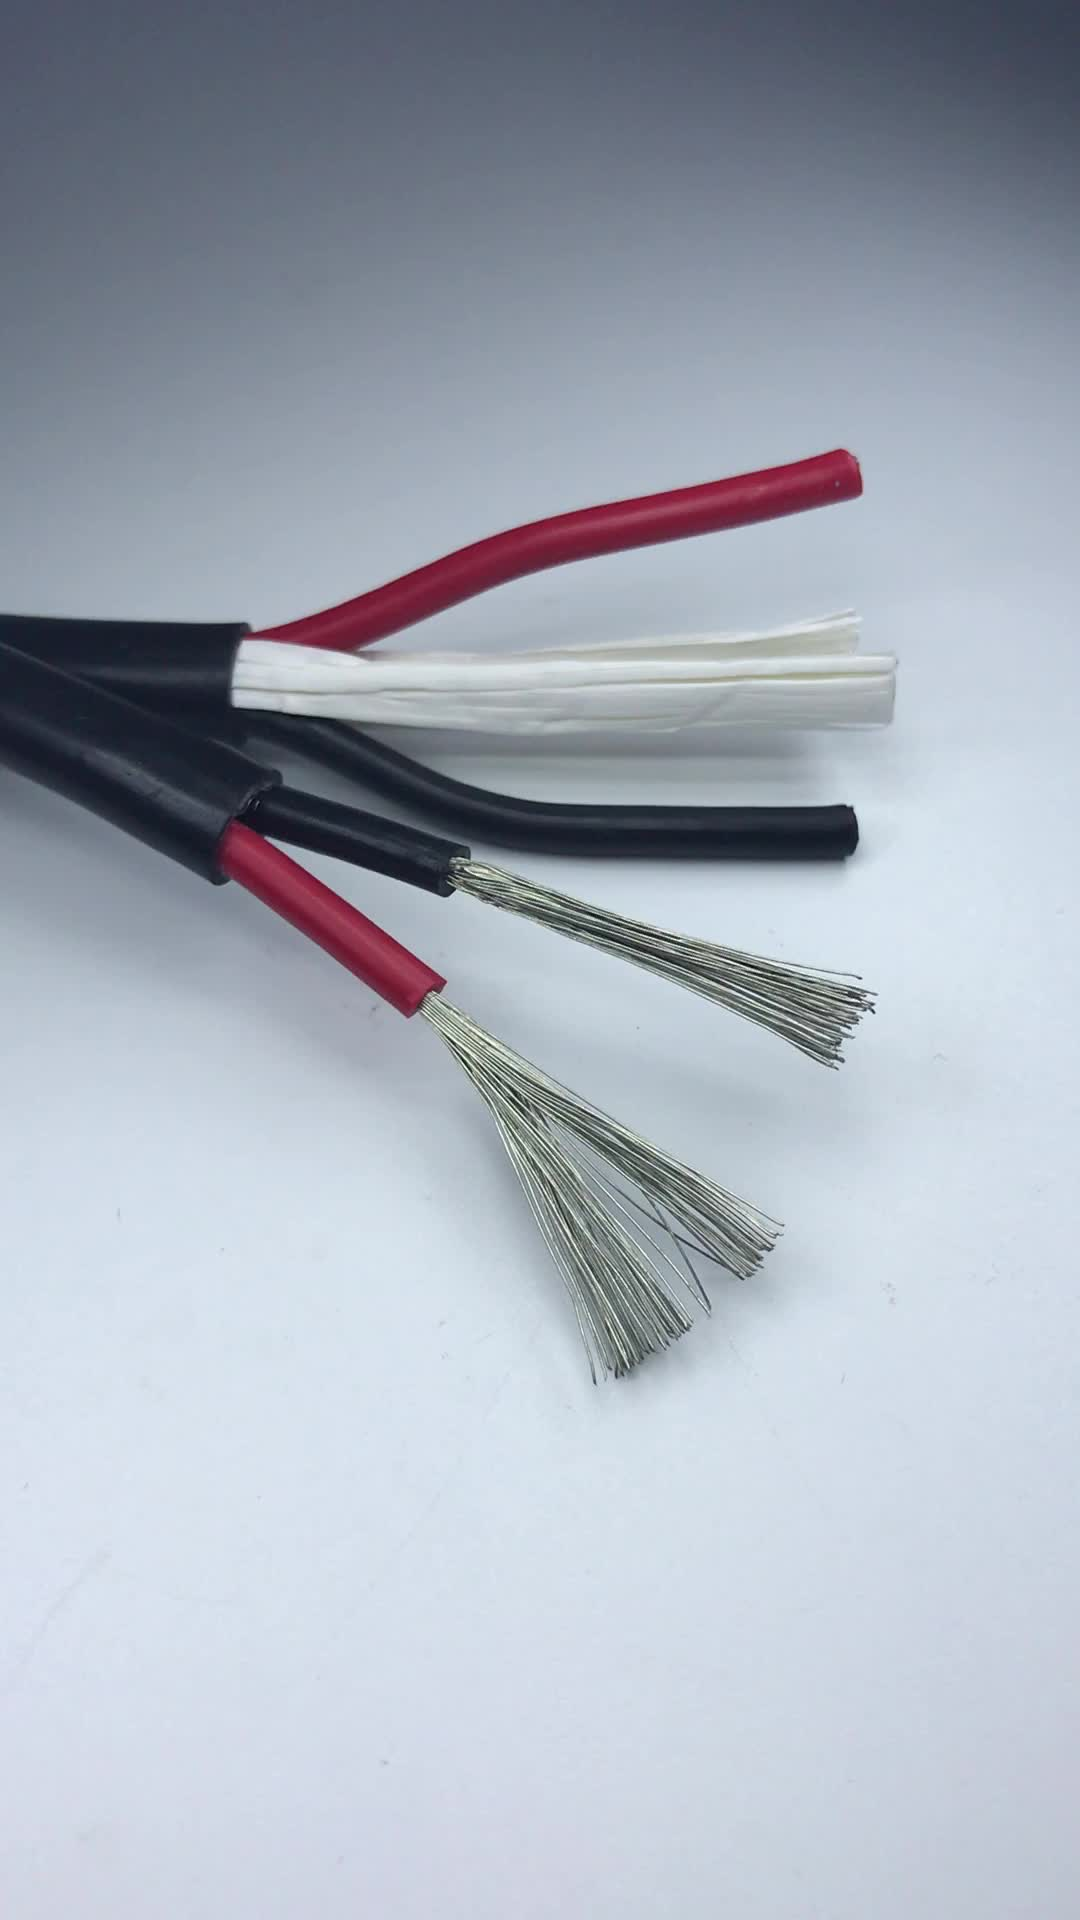 Flexible Electrical 2 Cores 3mm Stranded H05gg-f Copper Cable Wire ...